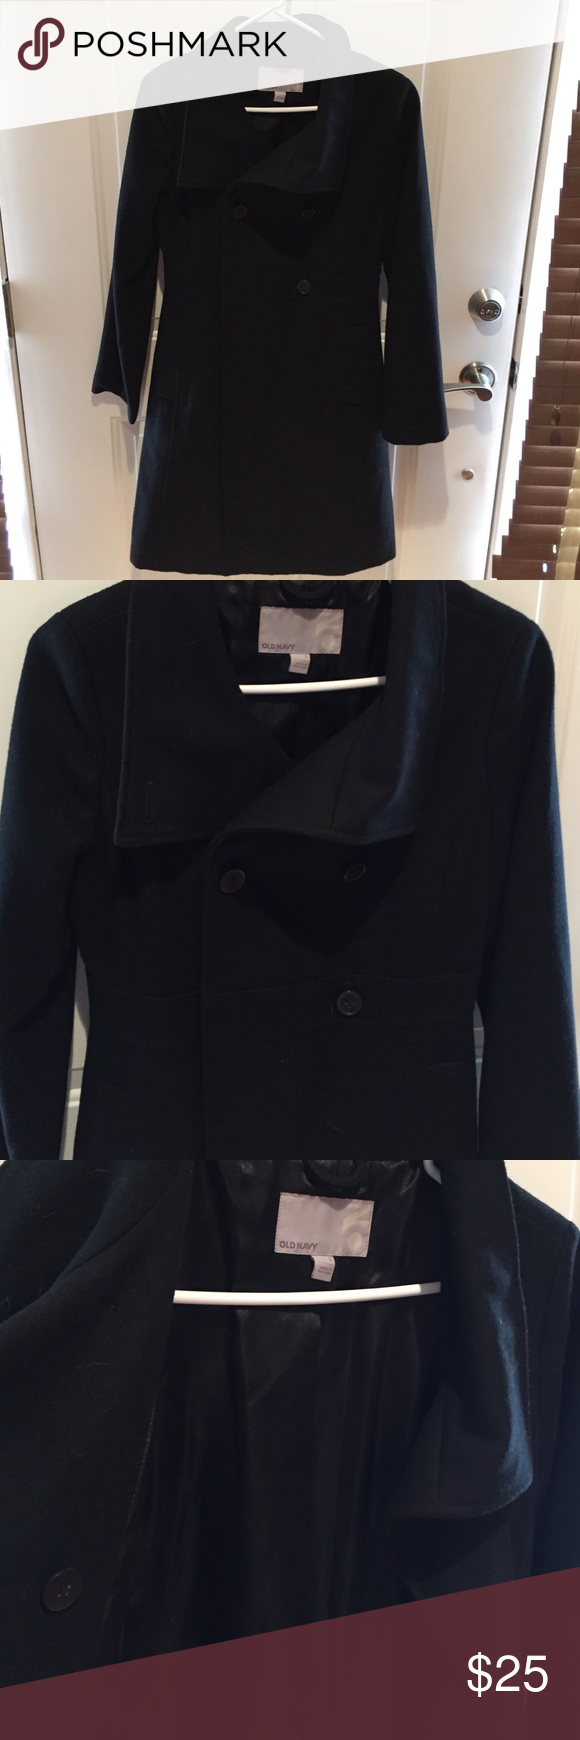 Women's old navy wool coat Black wool jacket. Lightly worn to work, I have a new jacket and this doesn't get much attention anymore. Lined! Old Navy Jackets & Coats Trench Coats